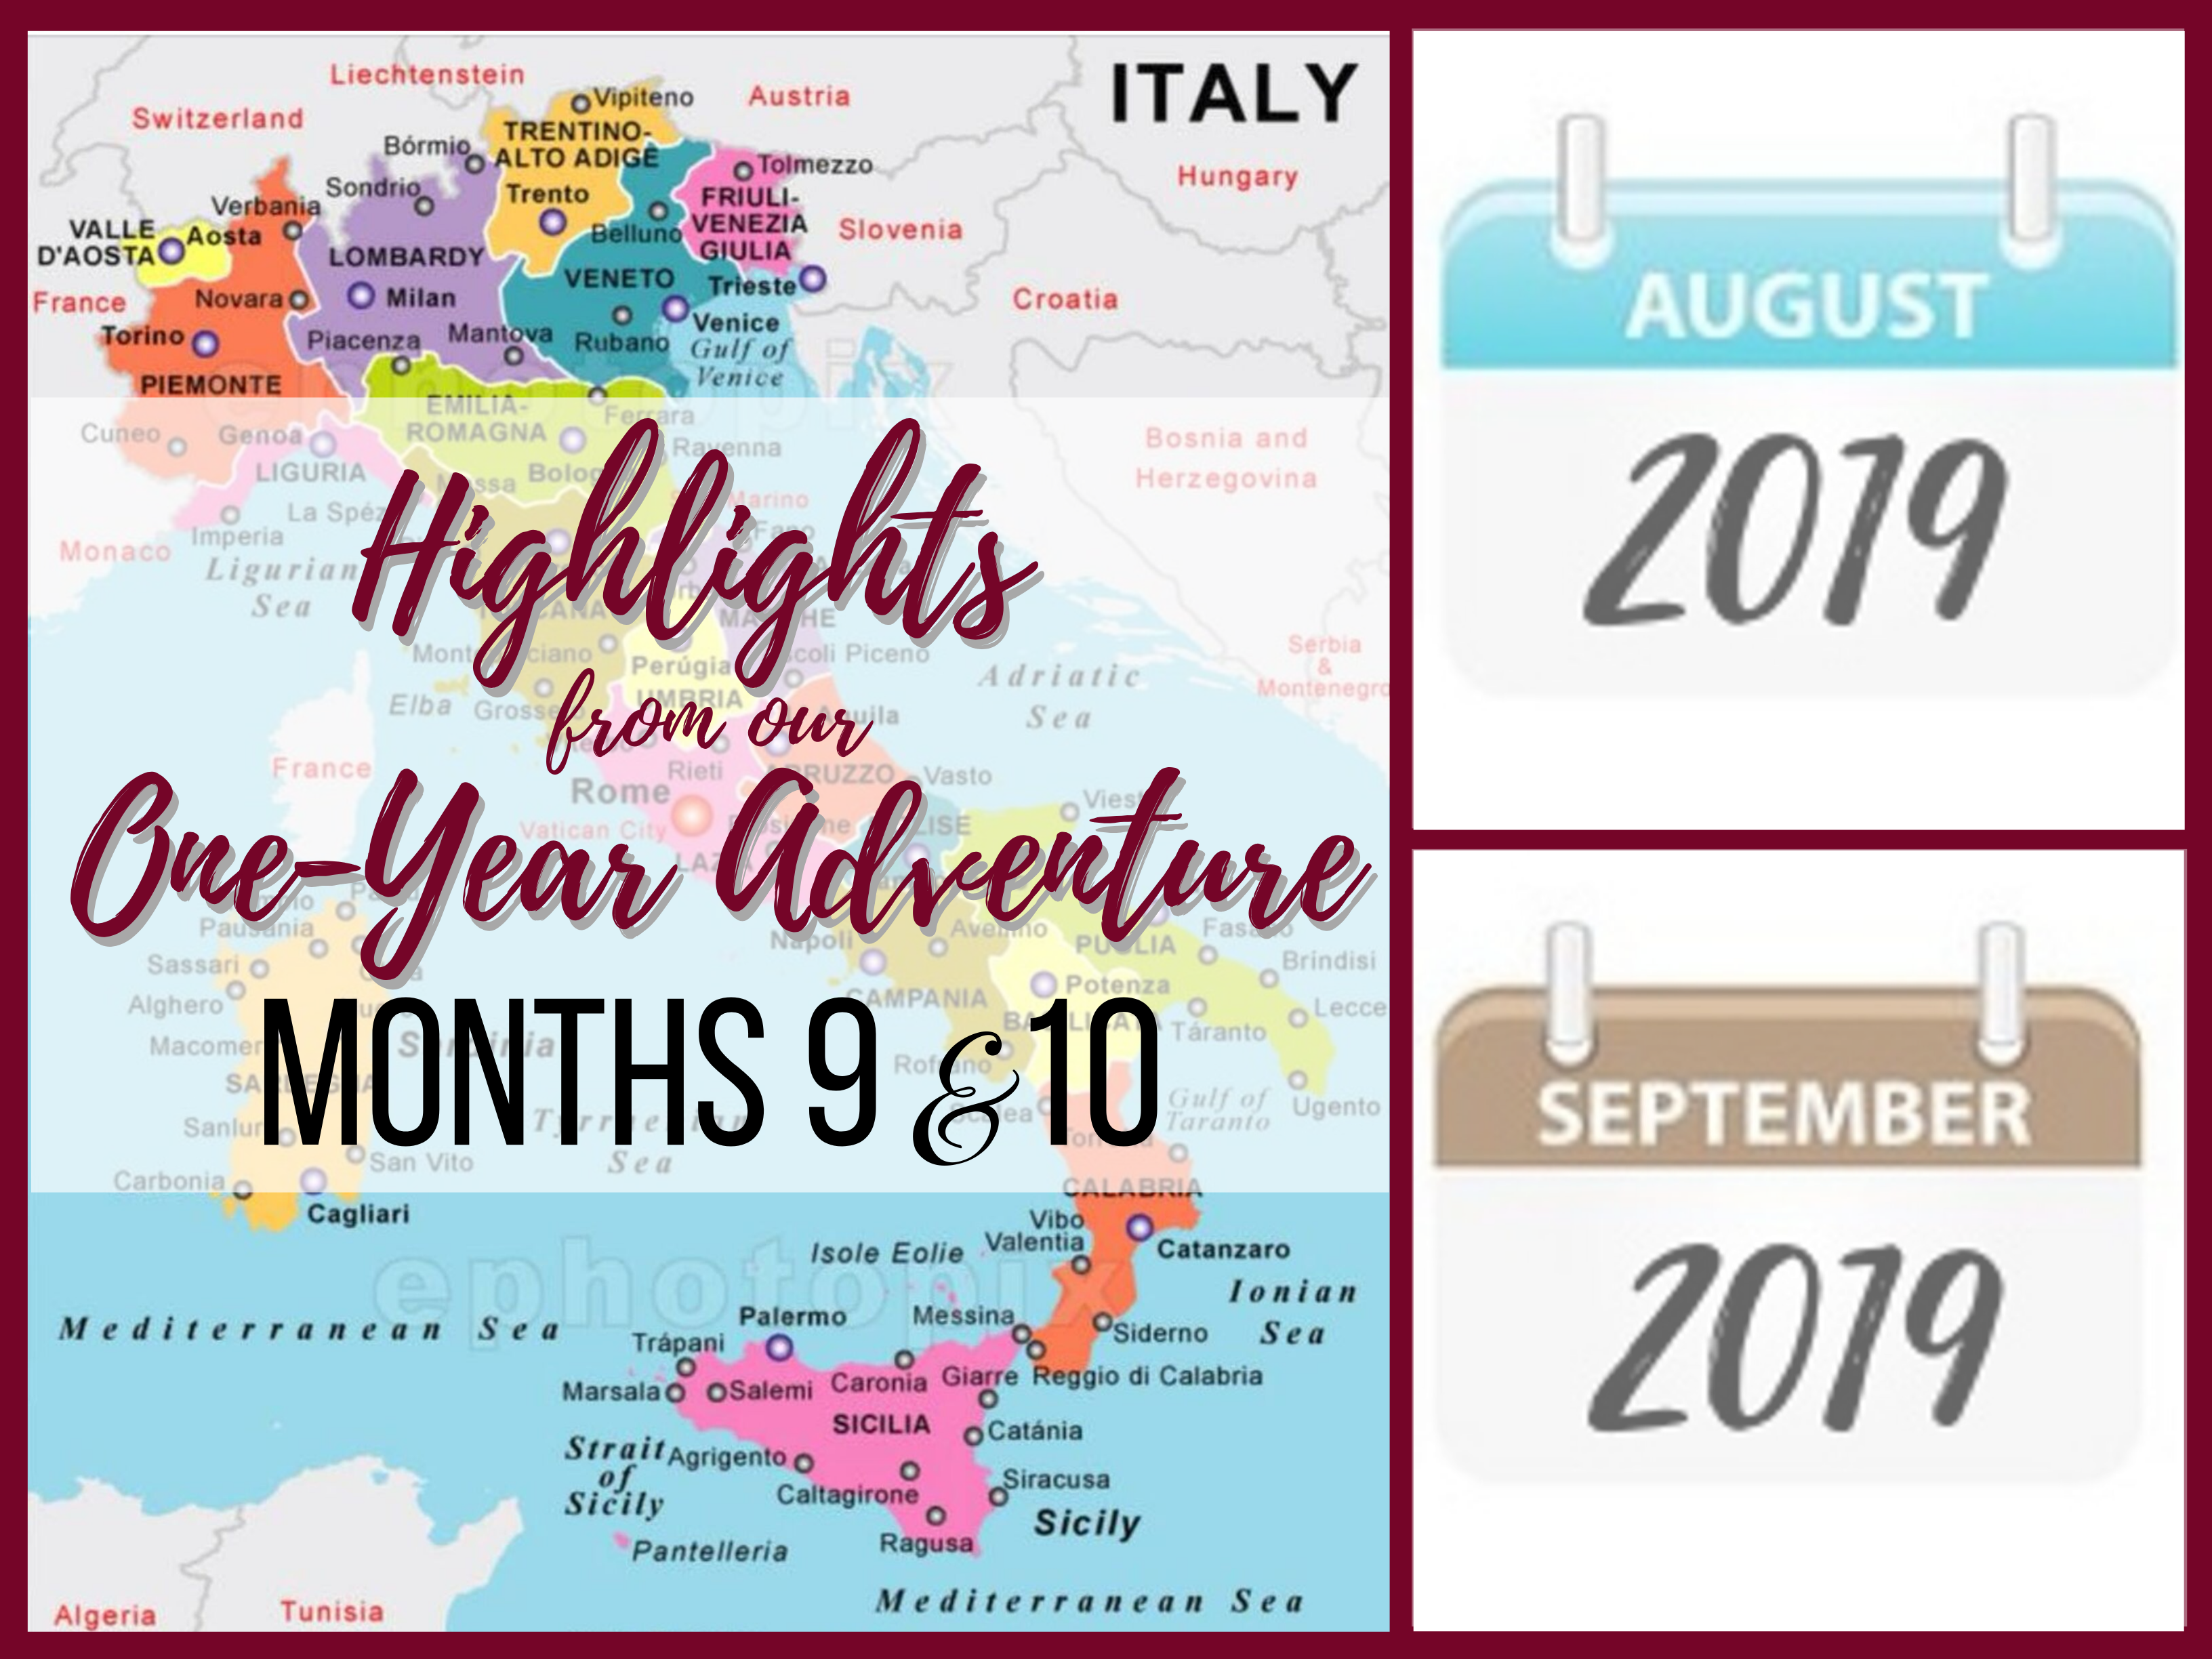 Months 9 & 10 for our 1-year adventure in Italy. New towns explored. https://ouritalianjourney.com/months-9-10-1-year-adventure-in-italy